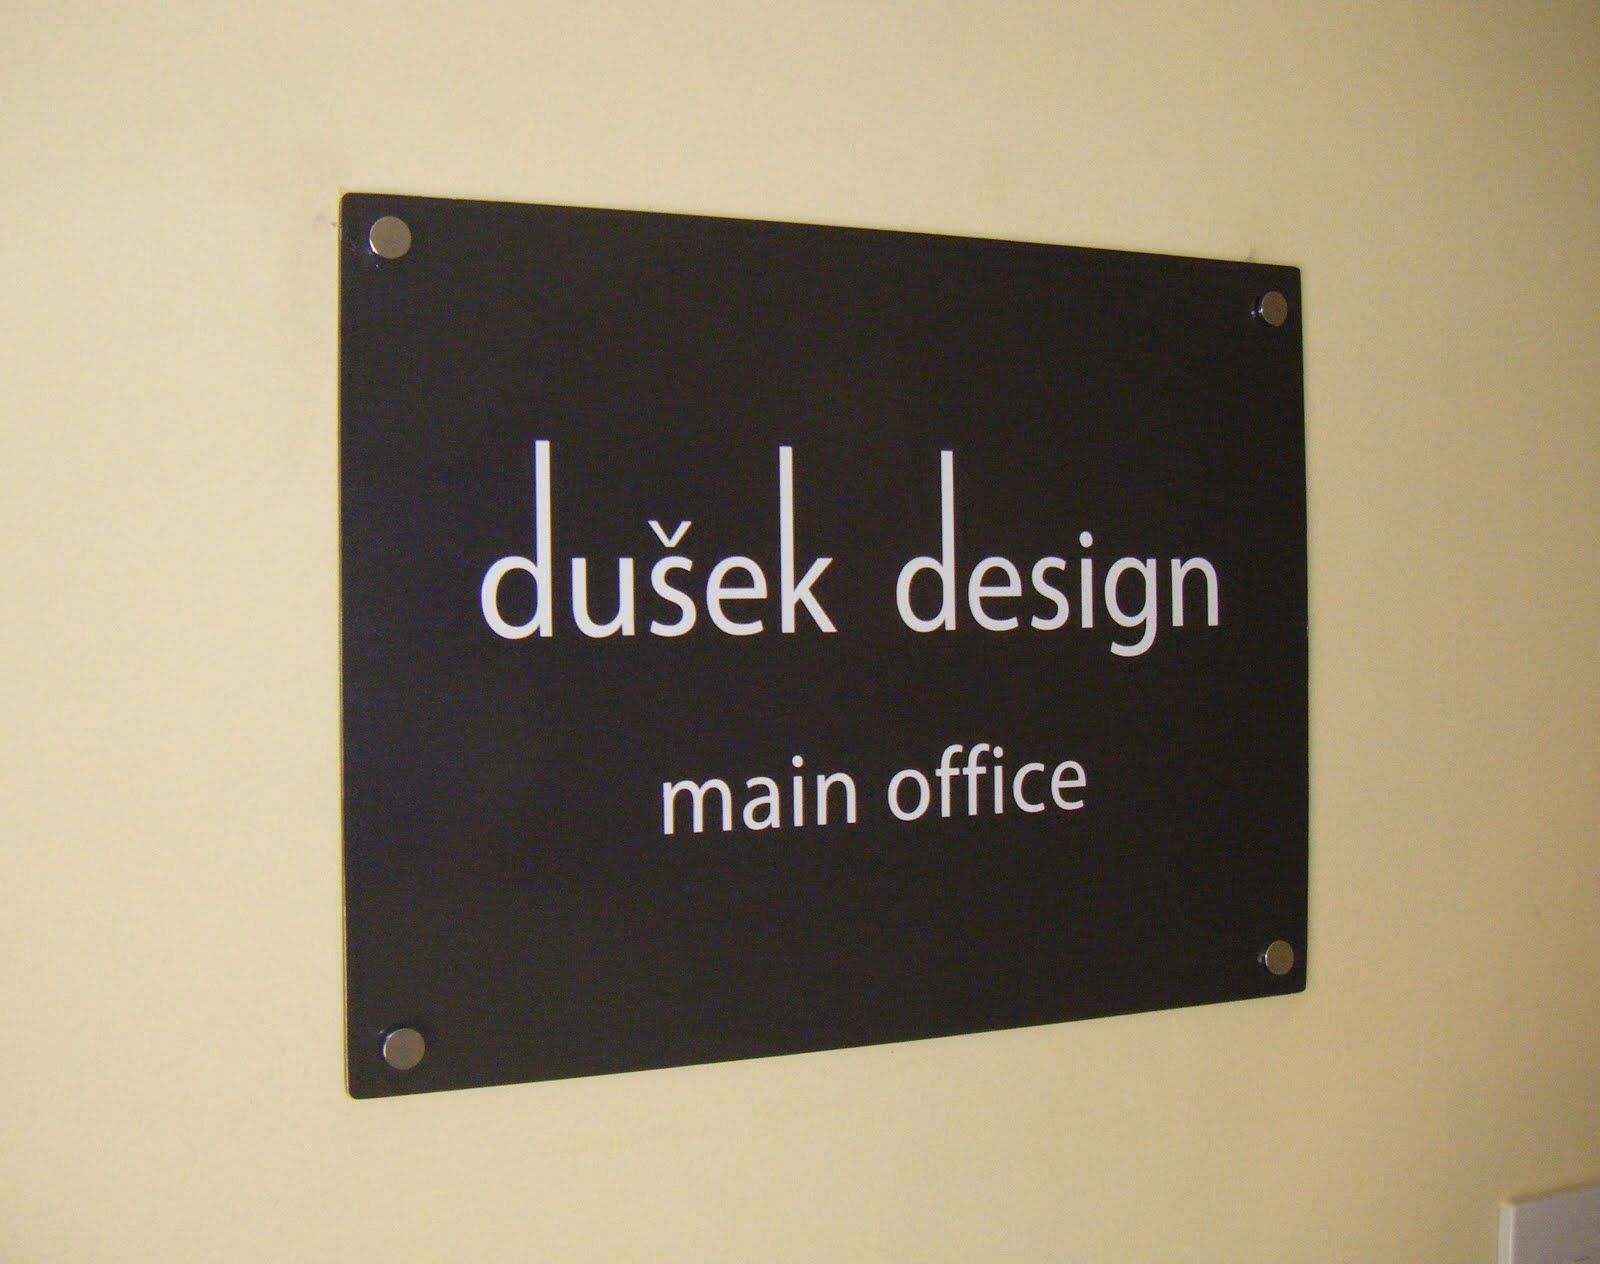 이미지 출처 http://gaby.fachrul.com/img/officedecorationalam/design-office-signage/lower-road-signs-october-20091600-x-1264-120-kb-jpeg-x.jpg